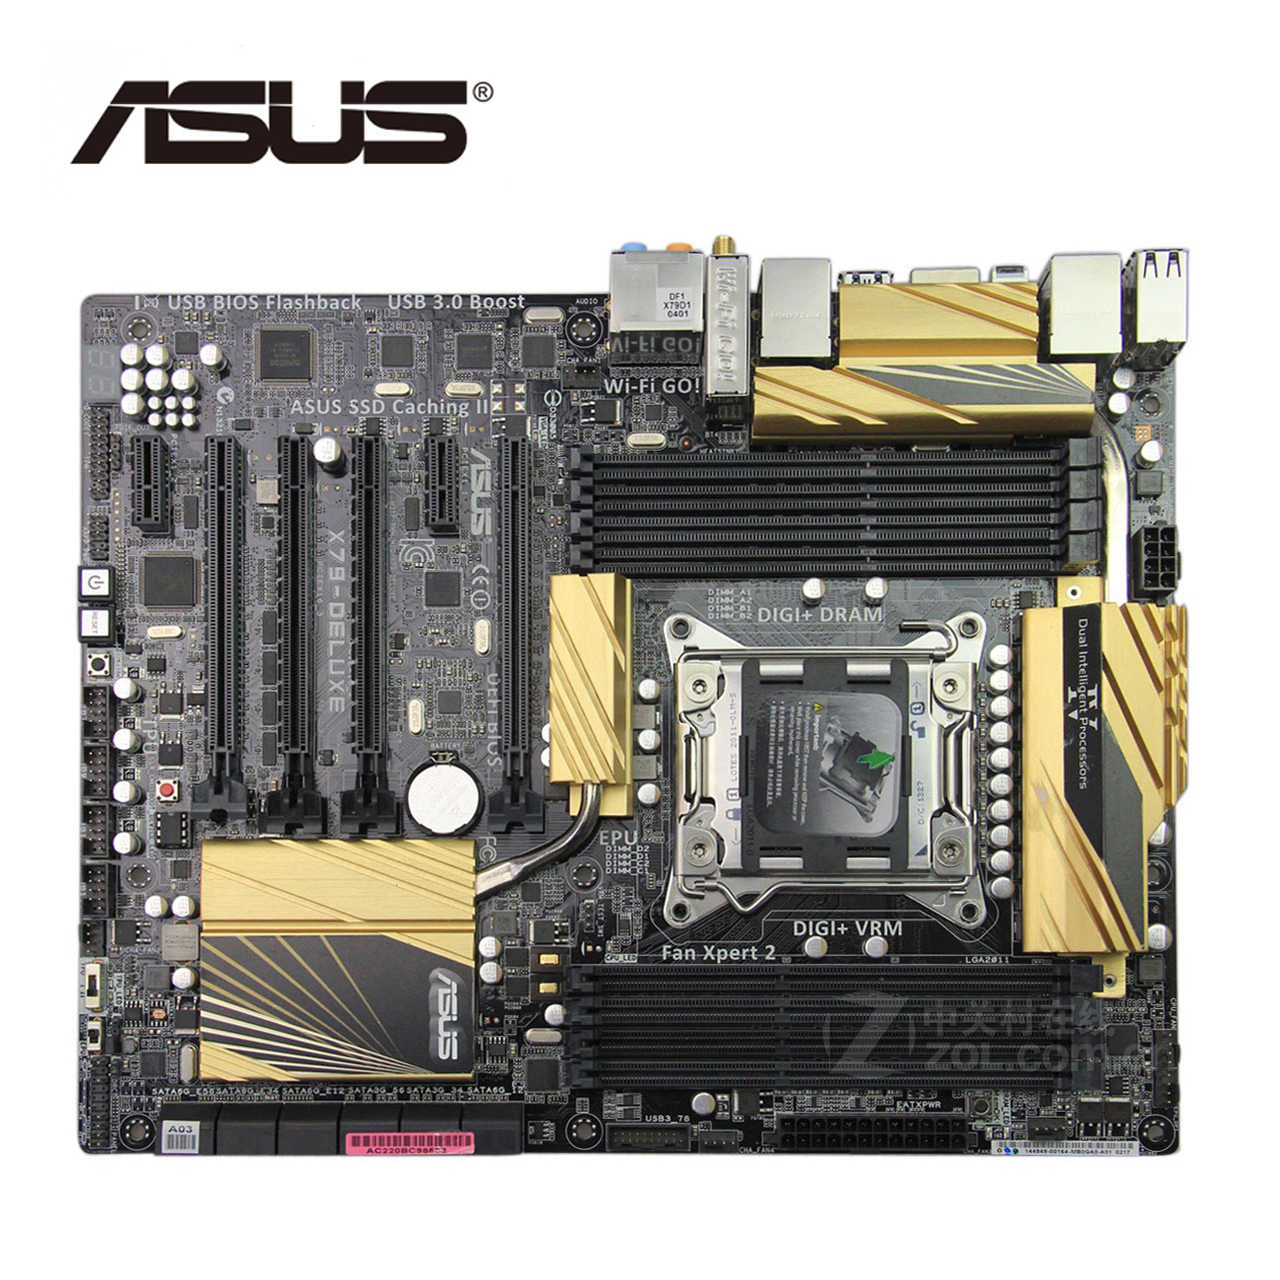 100% New!!! LGA 2011 DDR3 For ASUS X79-DELUXE New Original Motherboard 64G Mainboard SATA III Systemboard For Intel X79 DELUXE